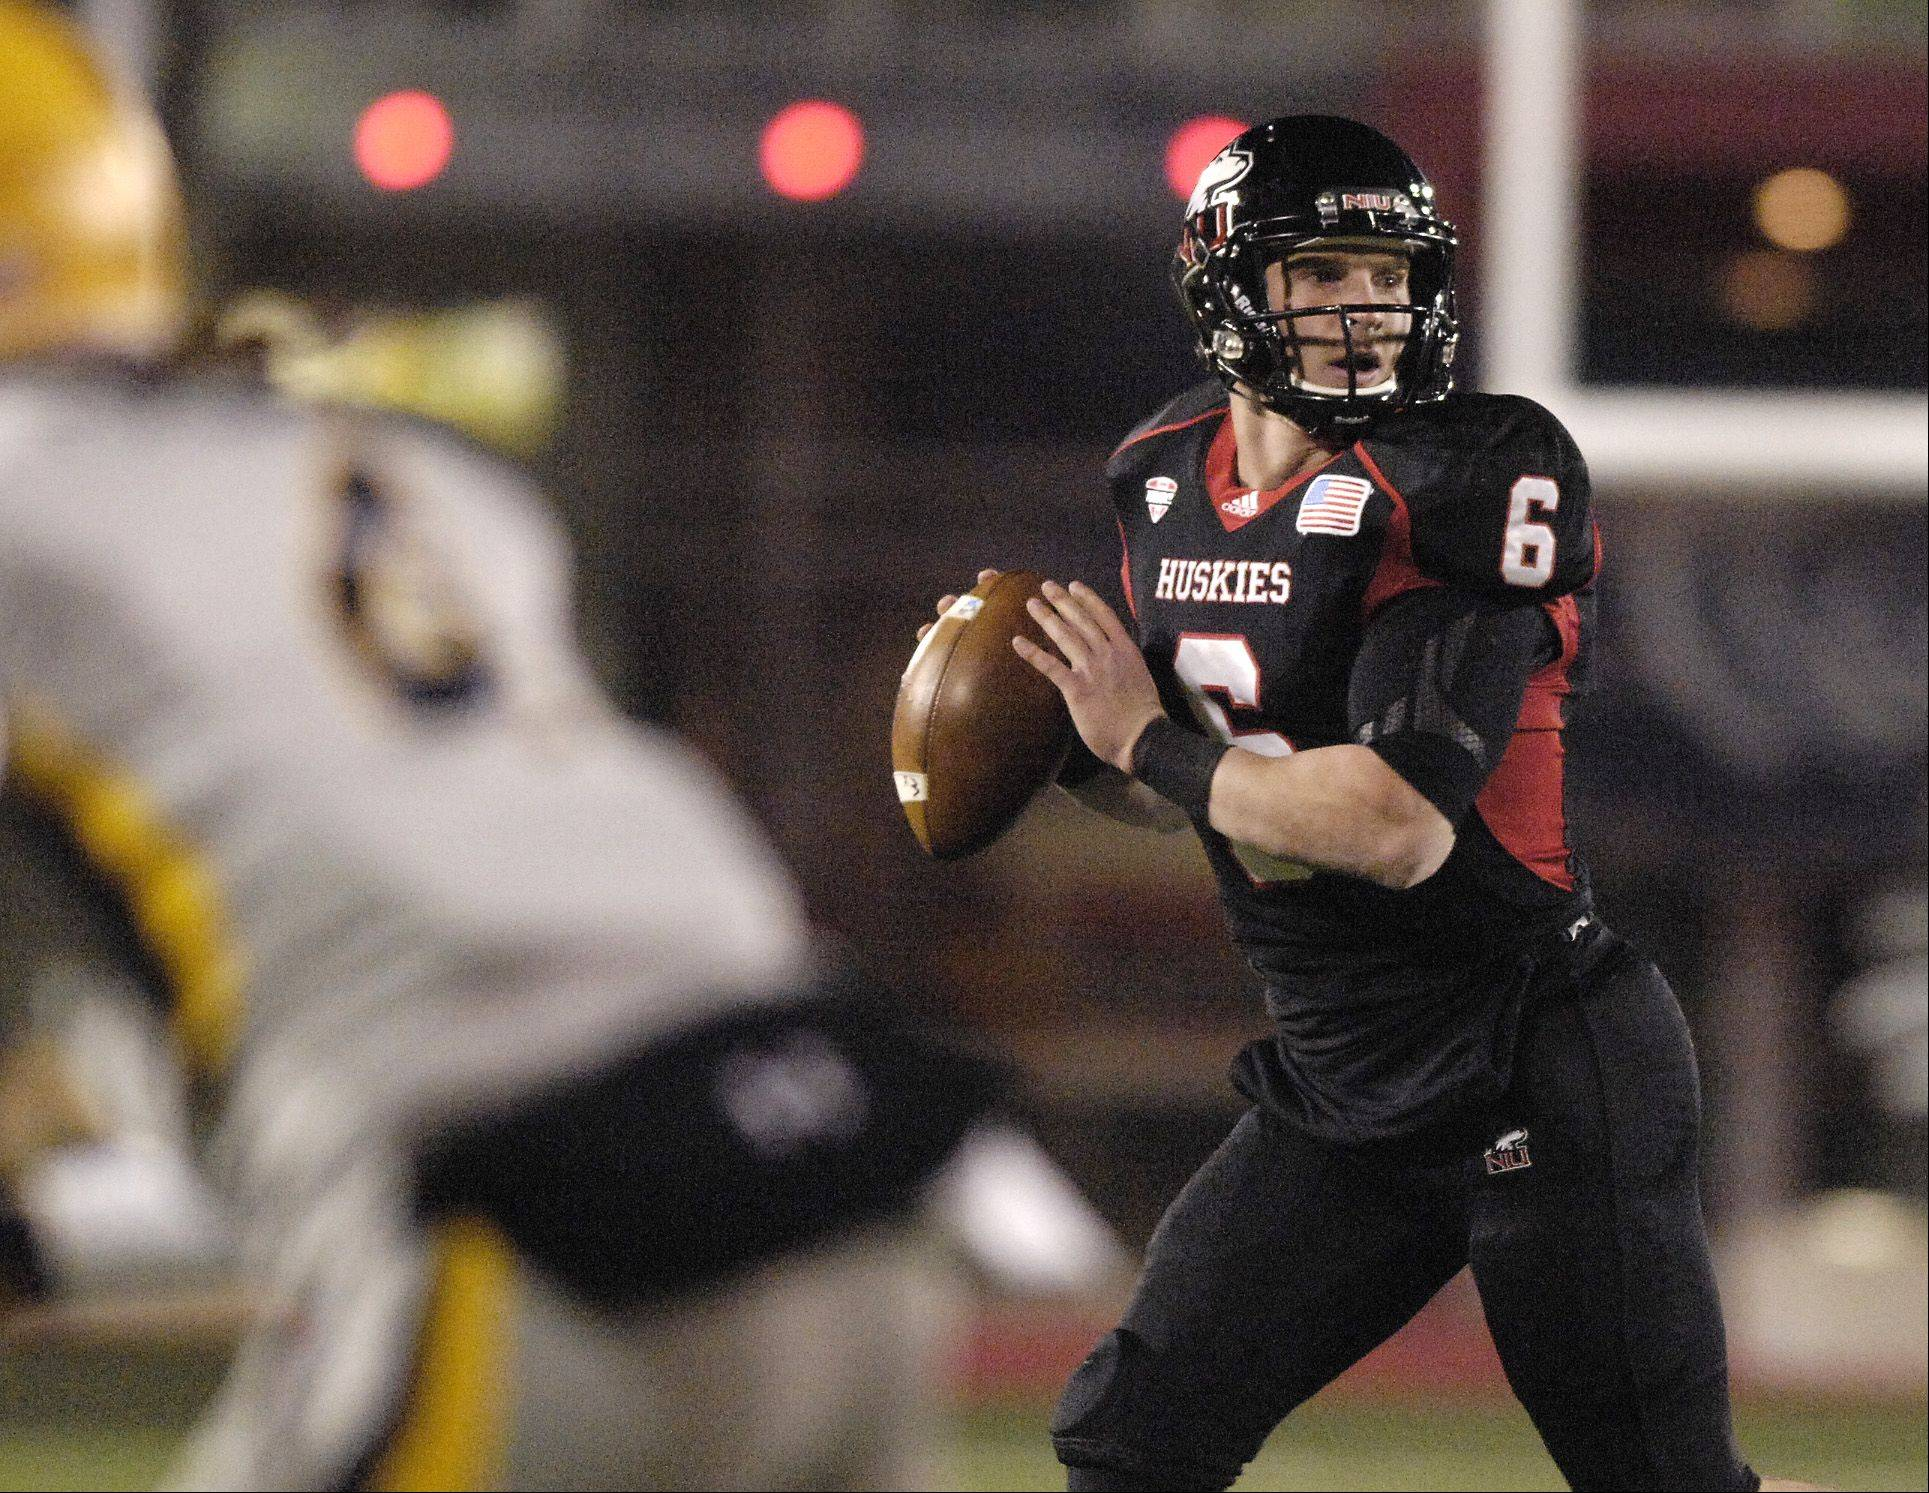 After a slow start in the first half, Northern Illinois University quarterback Jordan Lynch finished with 569 total yards of offense to help the Huskies beat Toledo Wednesday night